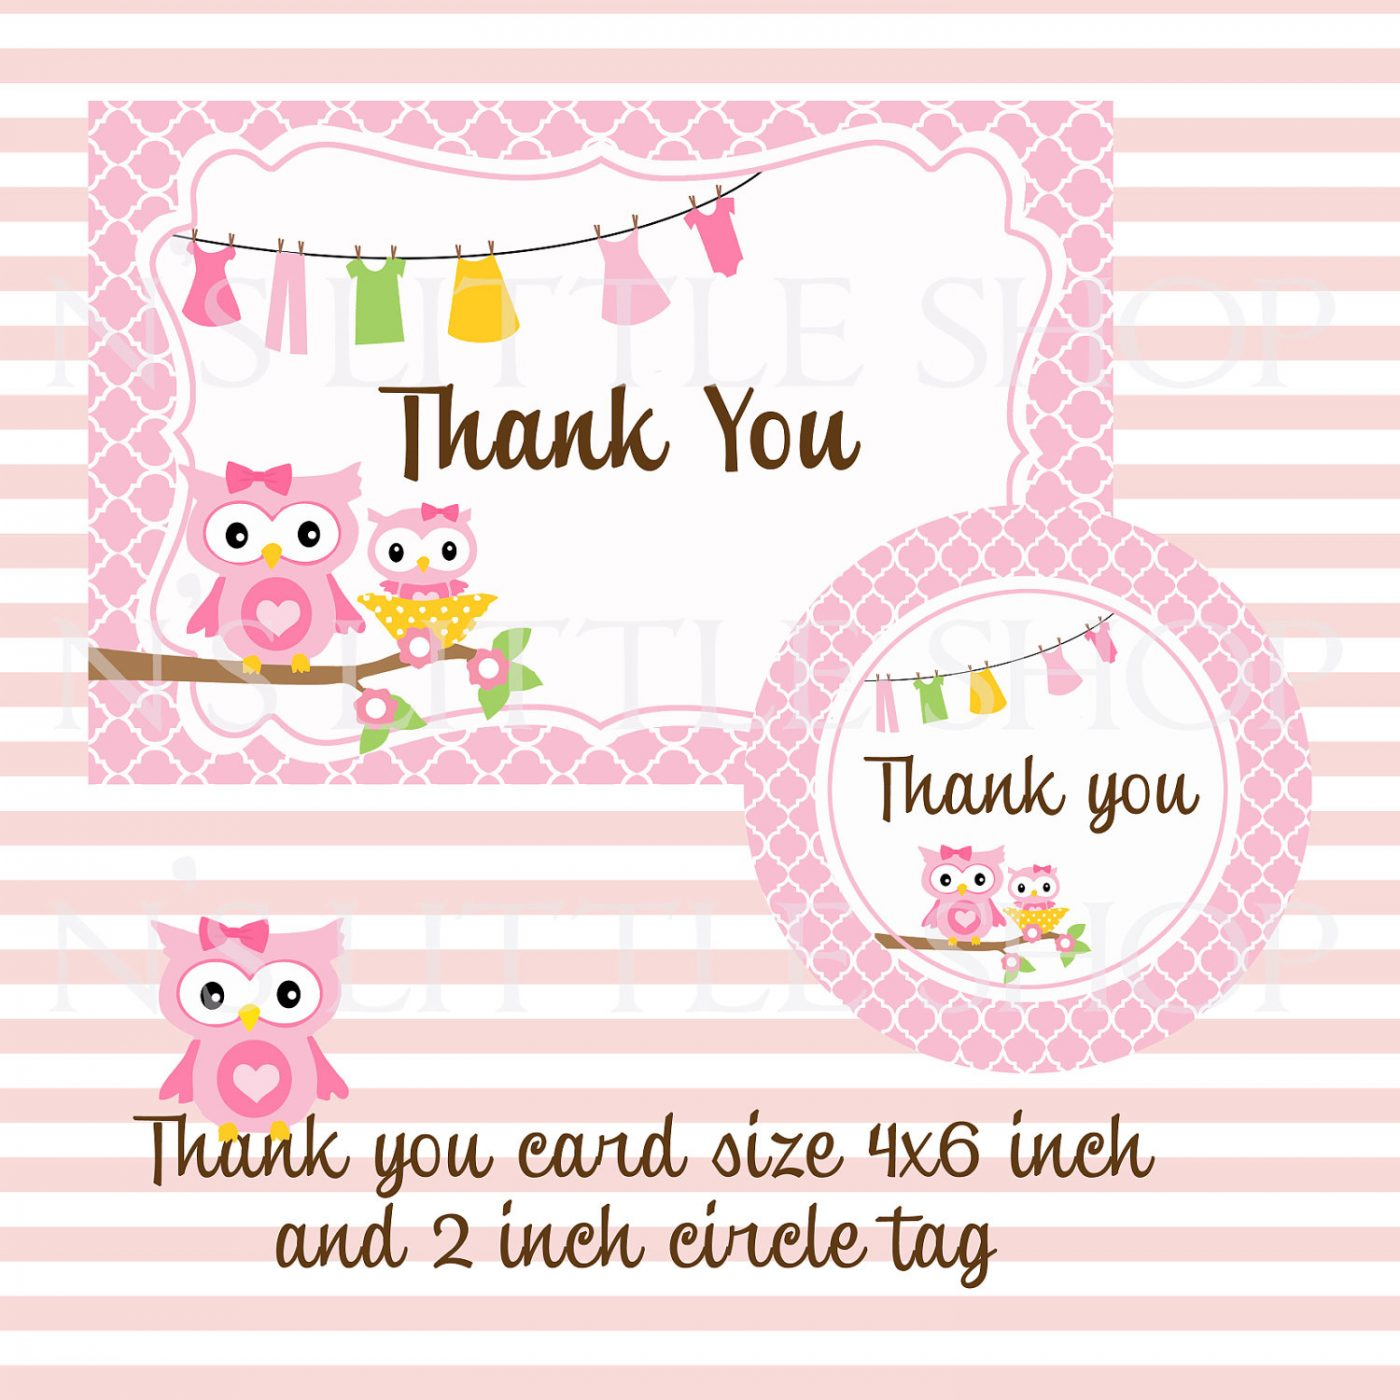 Full Size of Baby Shower:72+ Rousing Baby Shower Thank You Cards Picture Ideas Baby Shower Decorations Baby Shower Themes Baby Shower Hashtag Ideas Actividades Baby Shower Baby Shower De